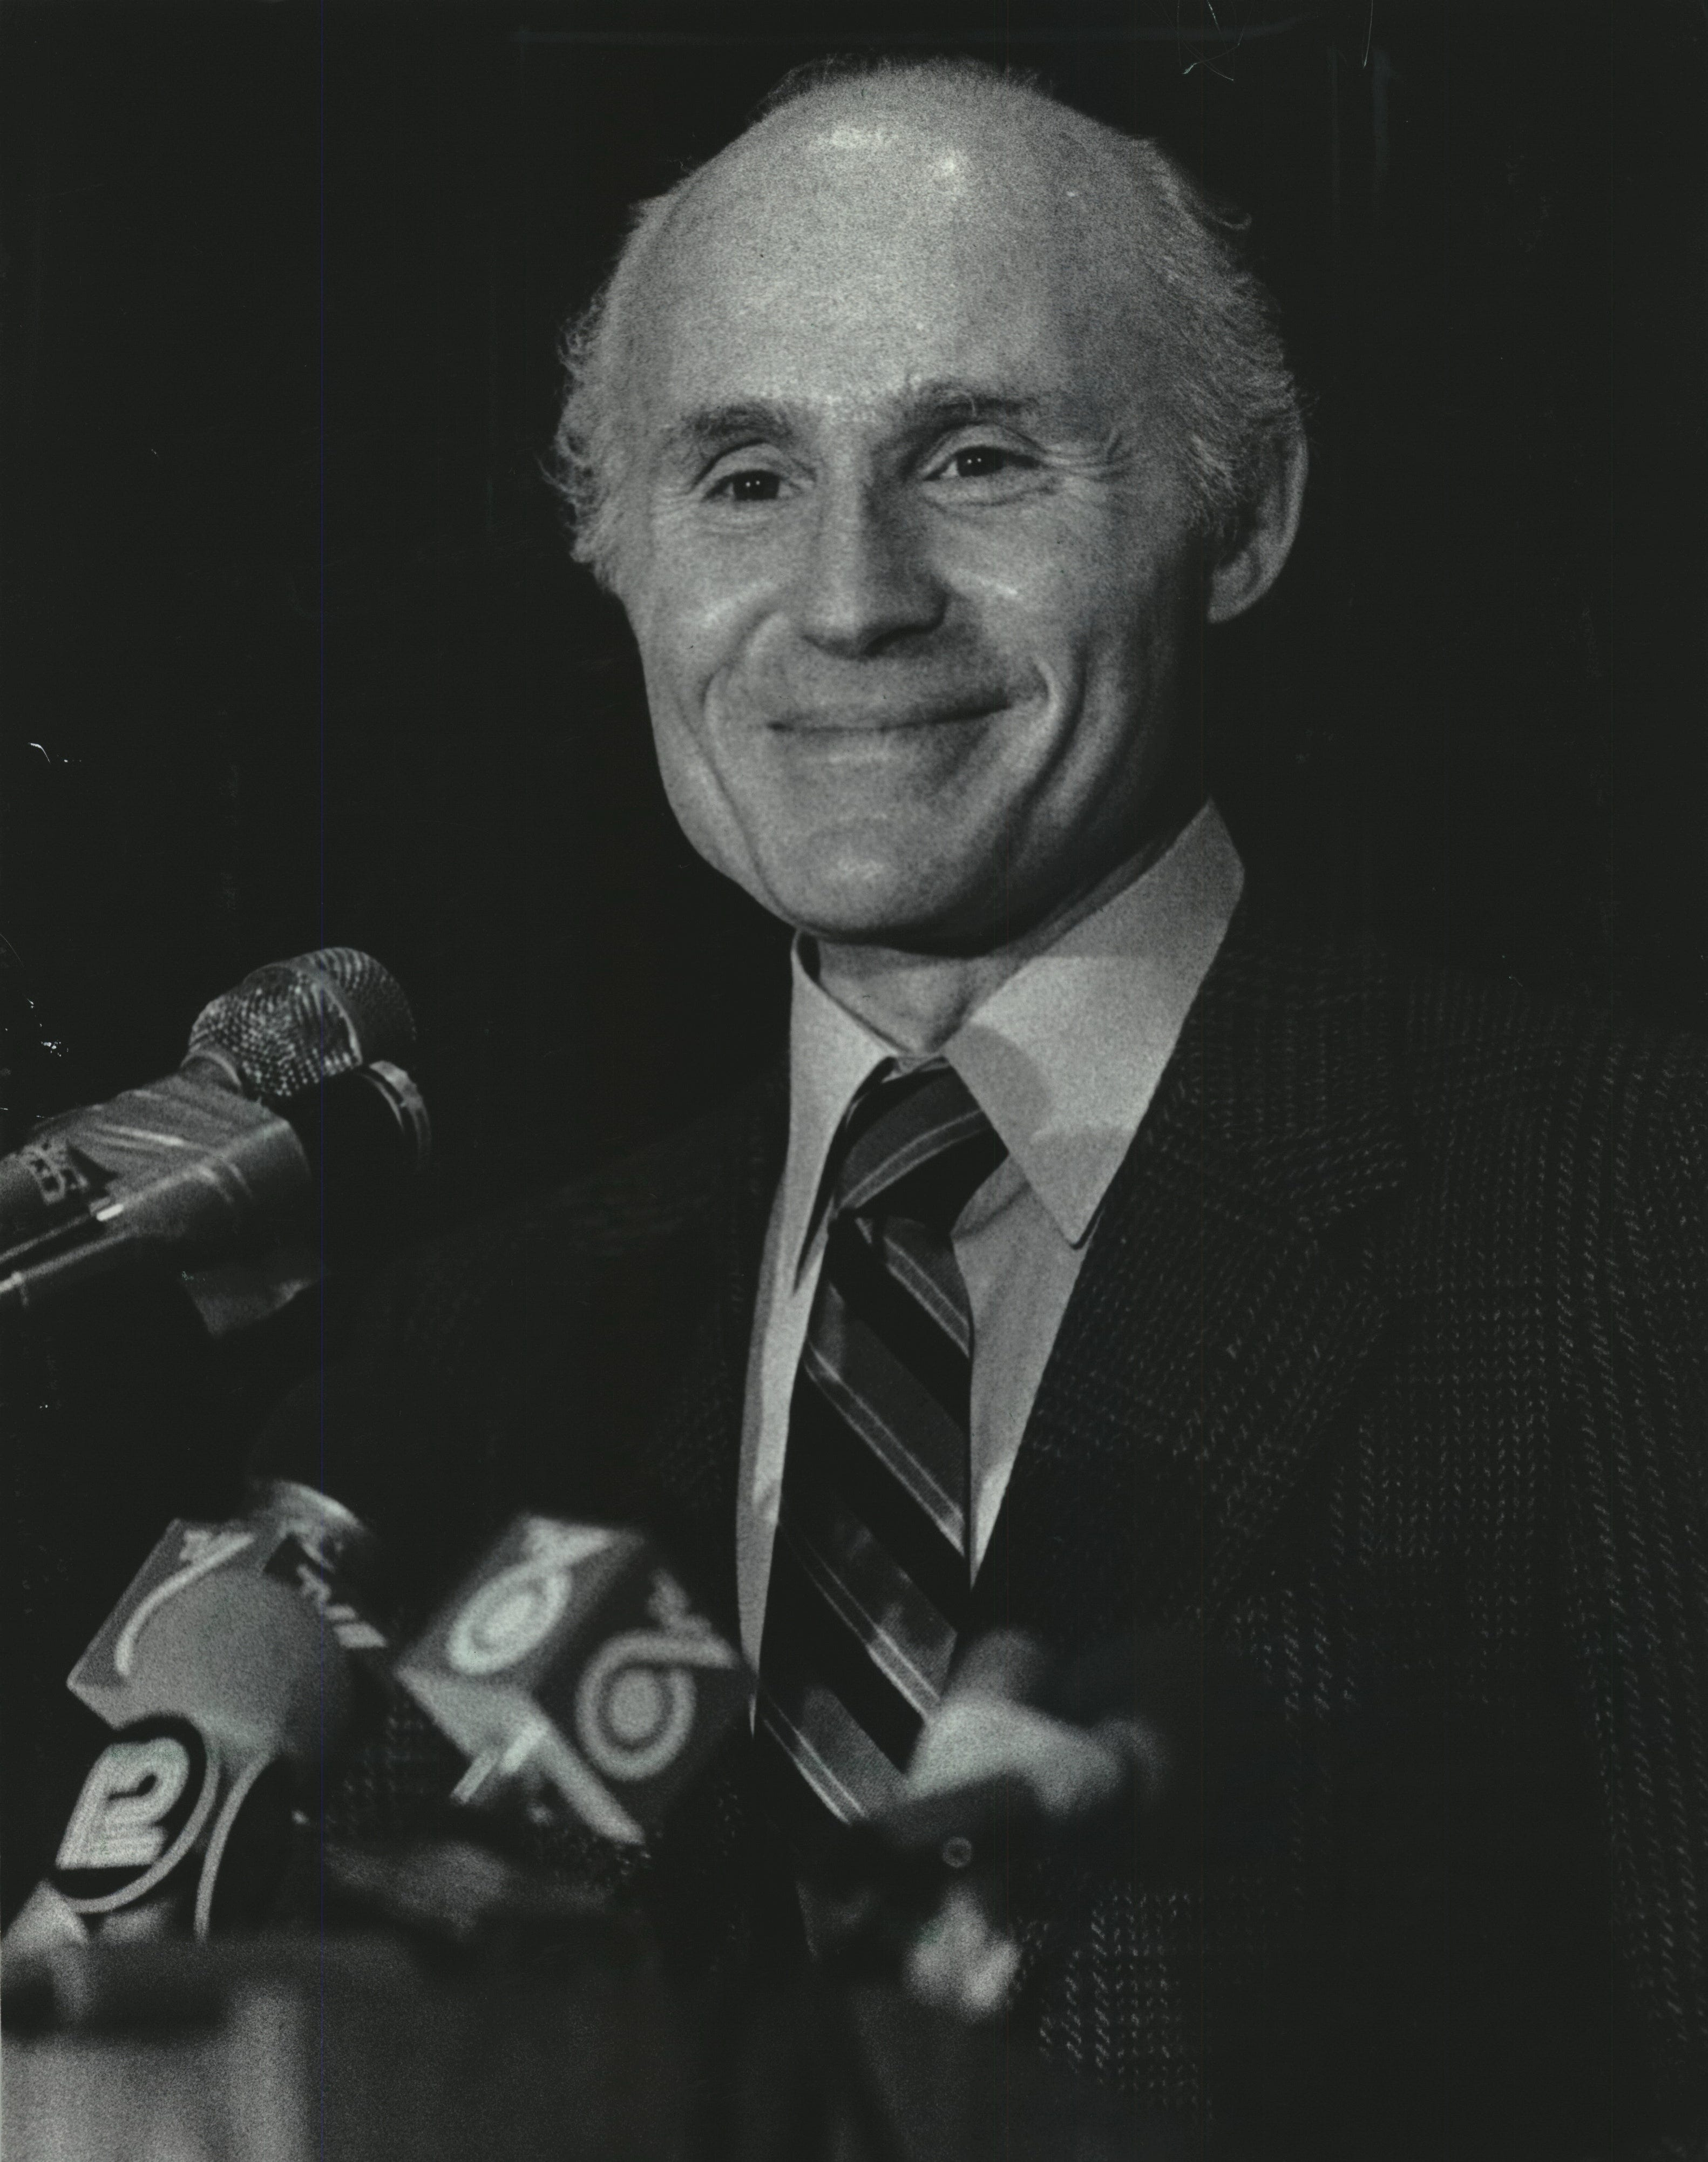 Herb Kohl bought the Bucks in 1985 but had an early interest in bringing an expansion team to Milwaukee in 1968.